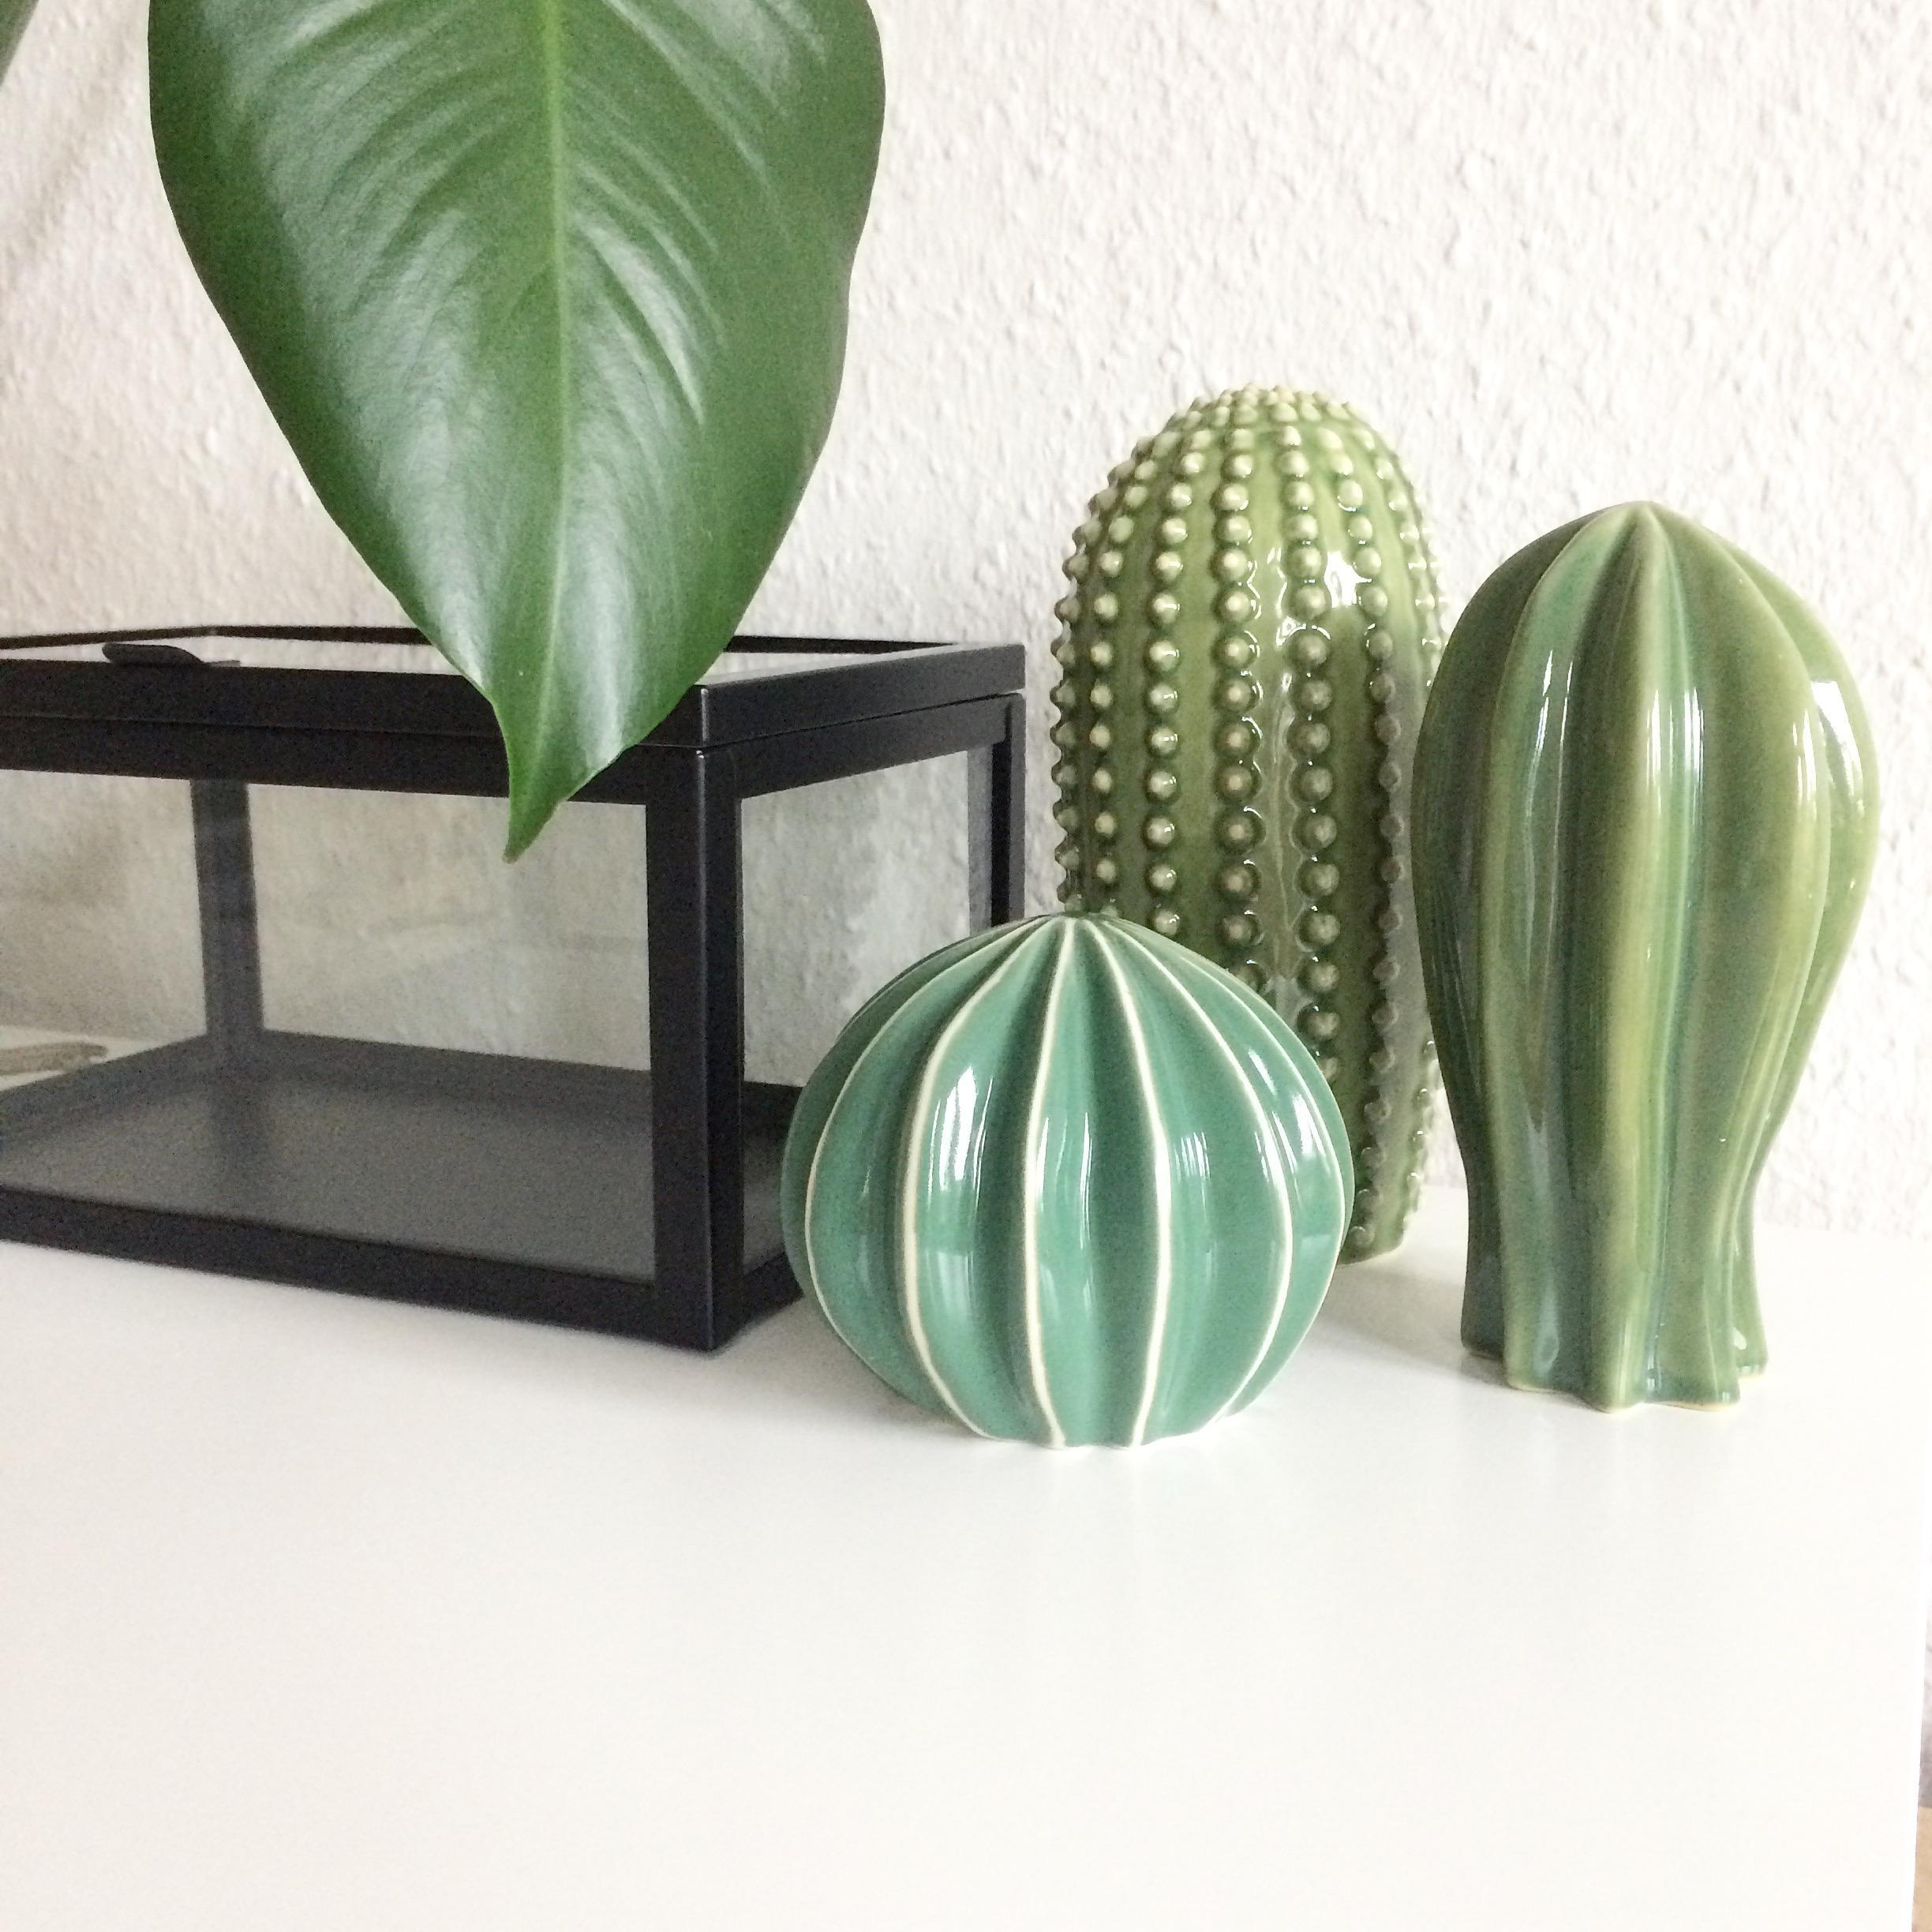 cactuslove #cactus #bedroom #bedroomdetails #ikea #decoration #interiordesign